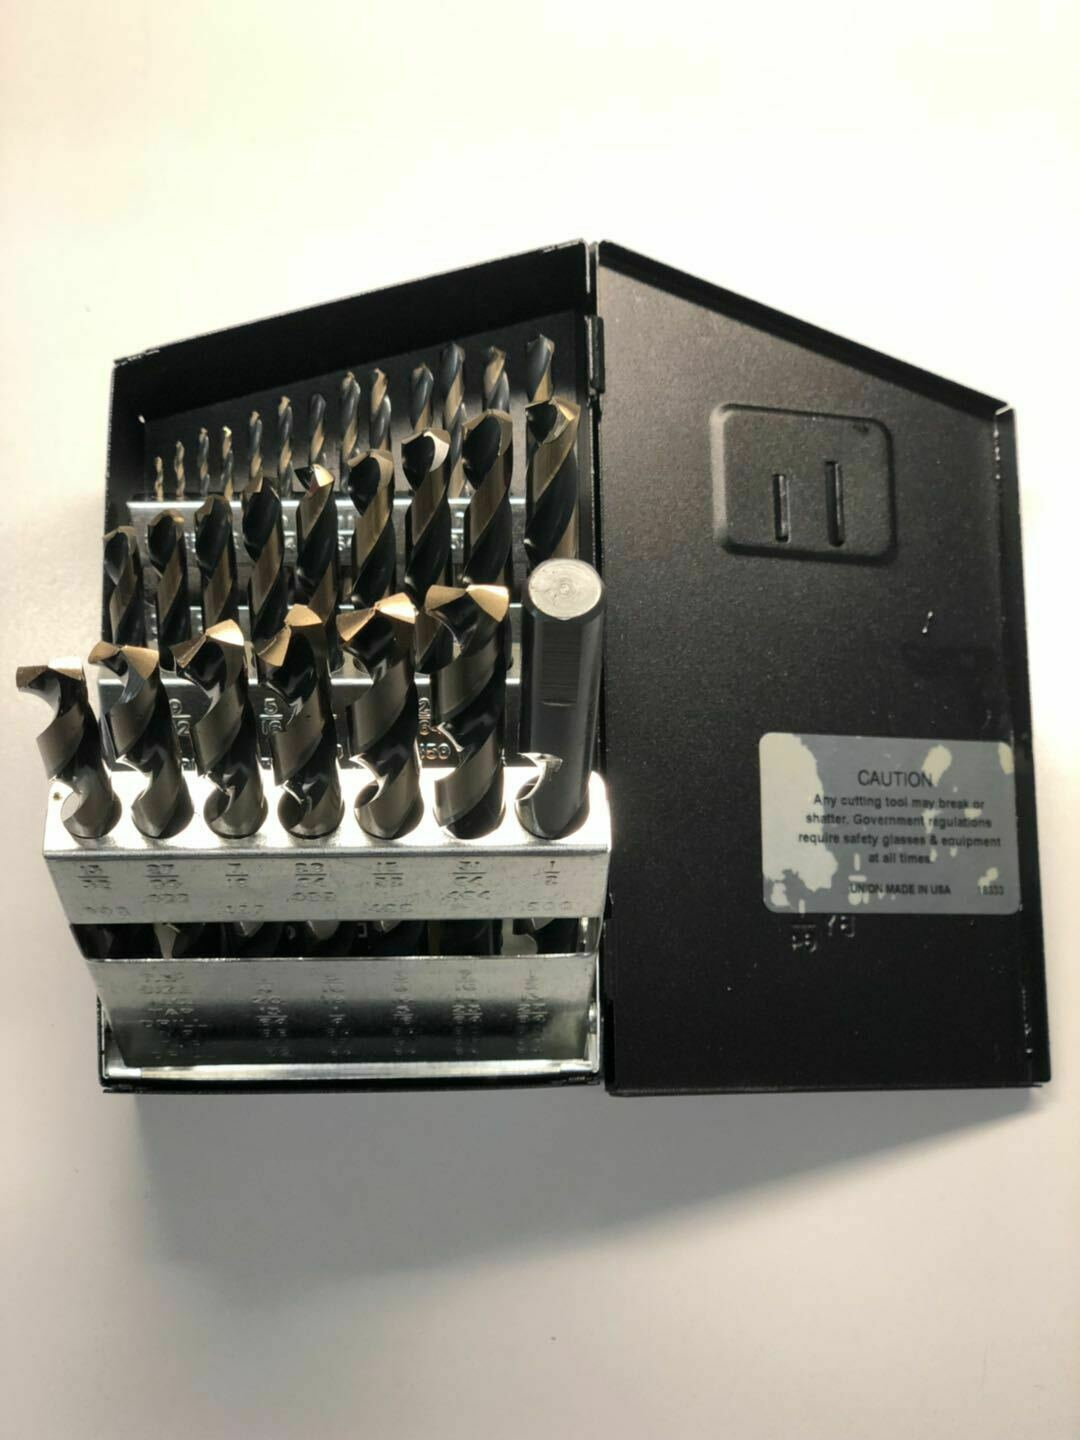 29pc Drill Bit Magnum Jobber Drill Set Tri-Flat Professional Tool Huot USA Box